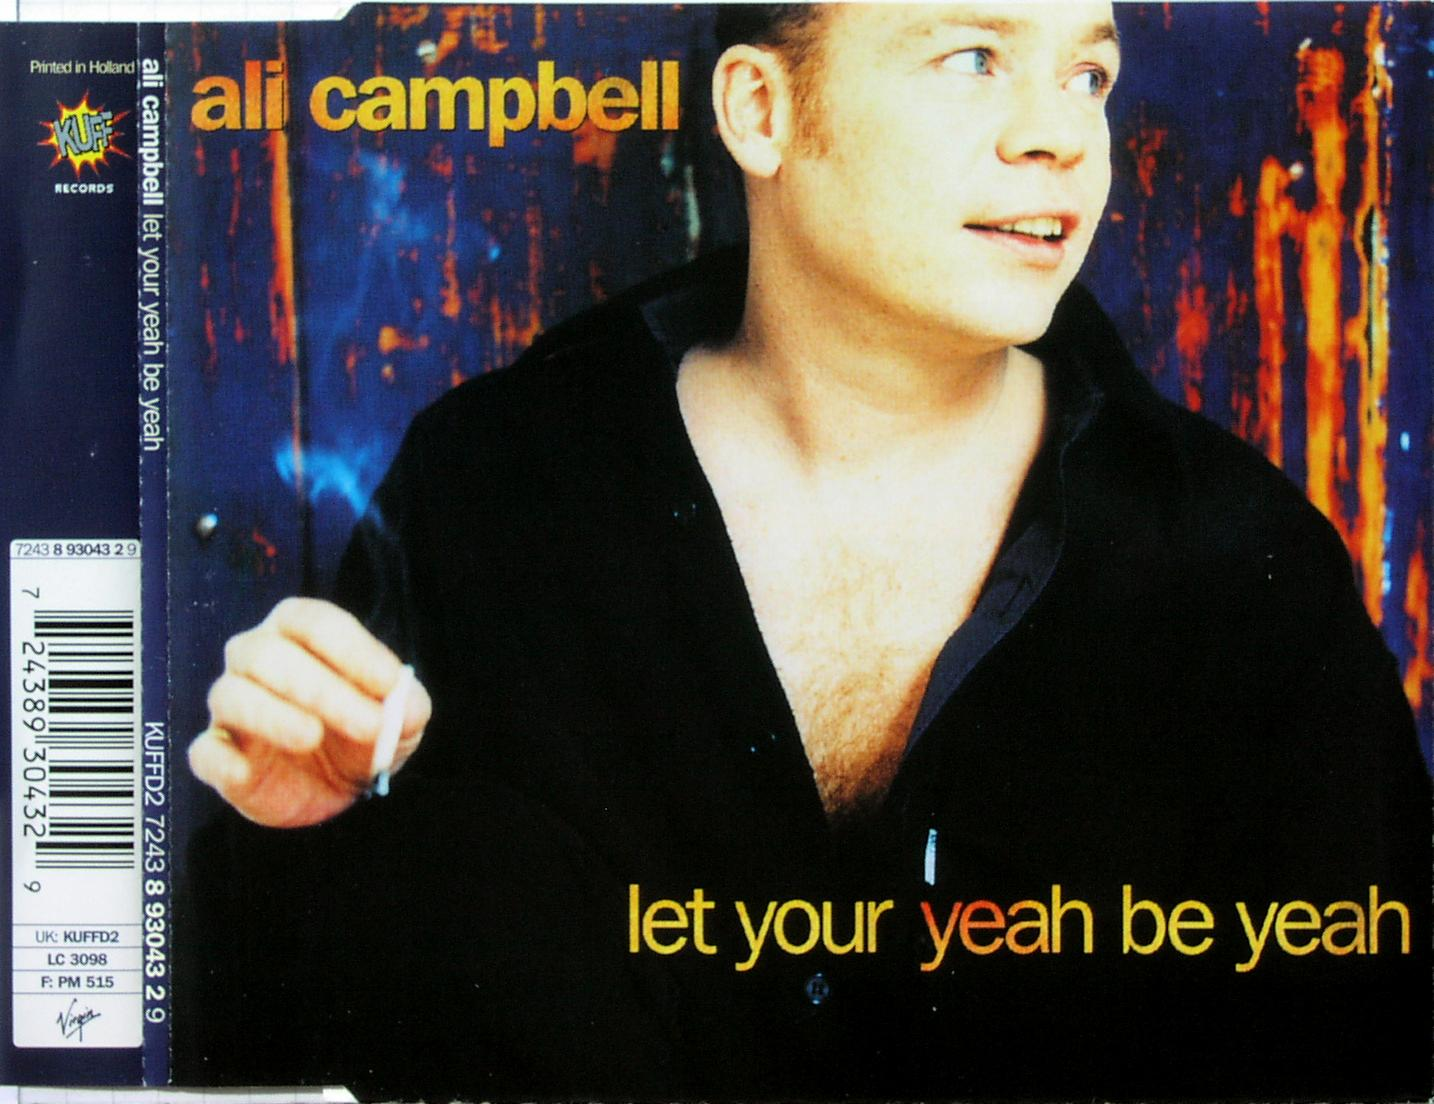 CAMPBELL, ALI - Let Your Yeah Be Yeah - CD Maxi